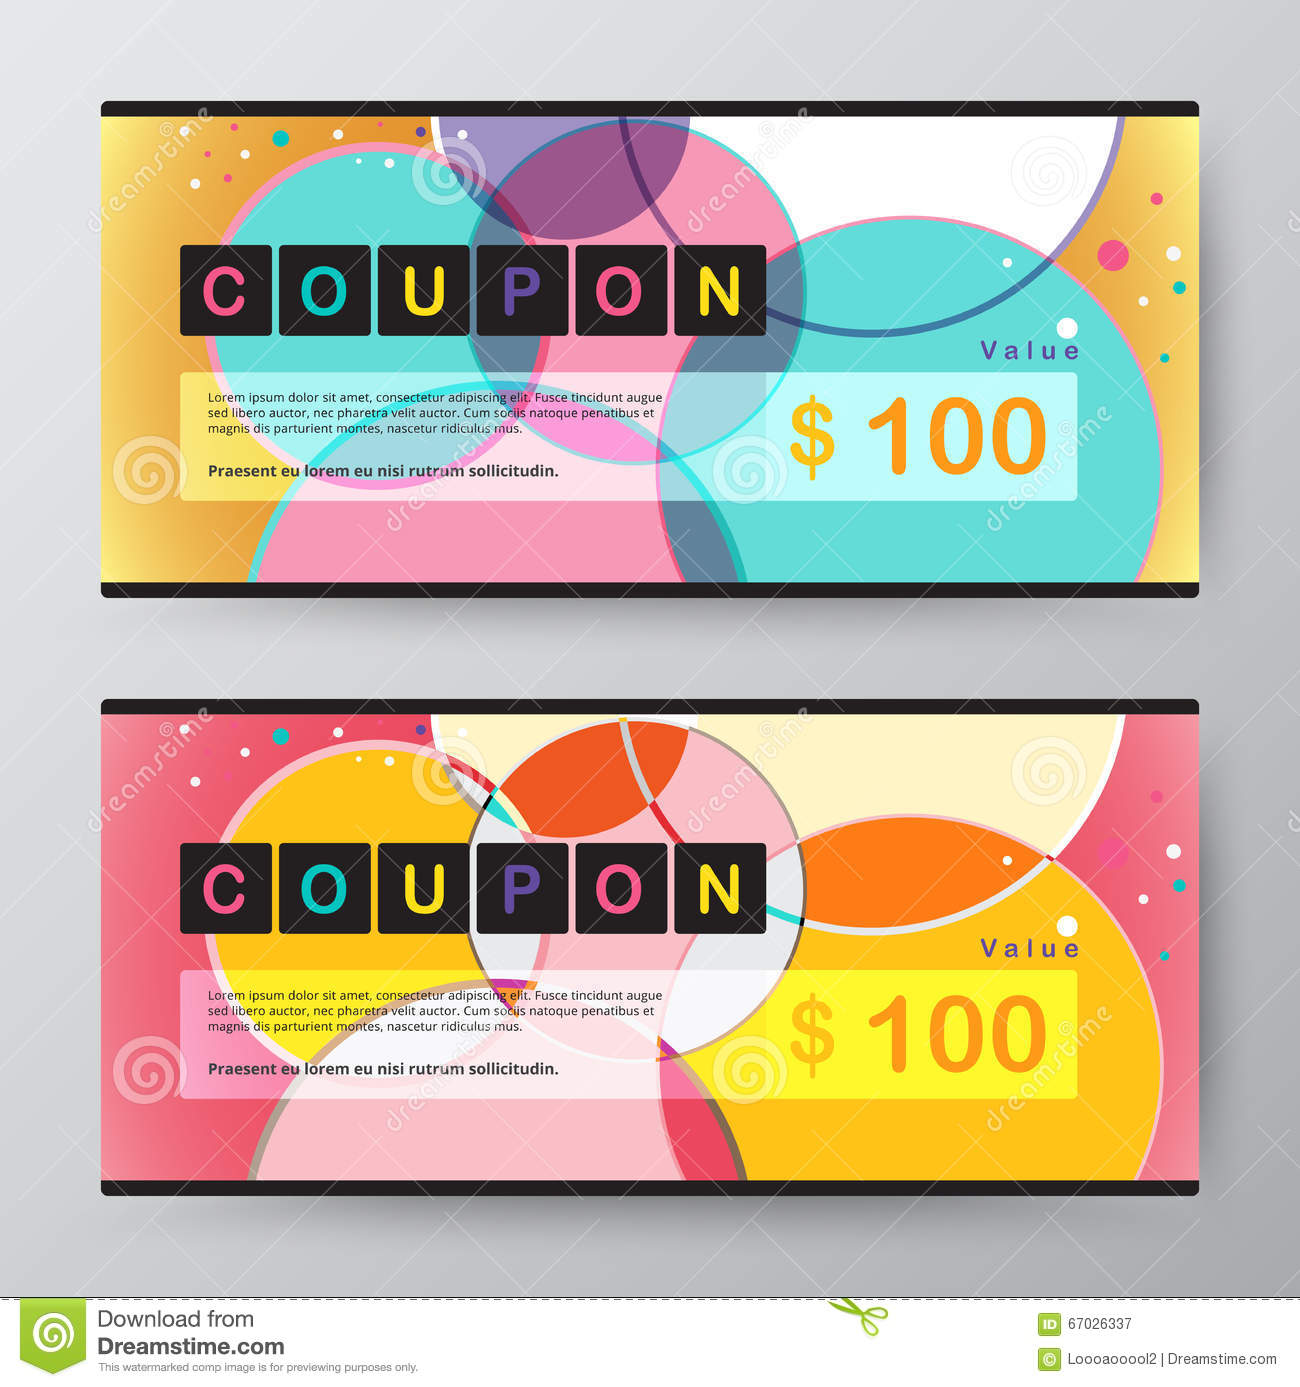 Coupon Card Template. Promotion Card. Vector Stock. Stock Vector ...